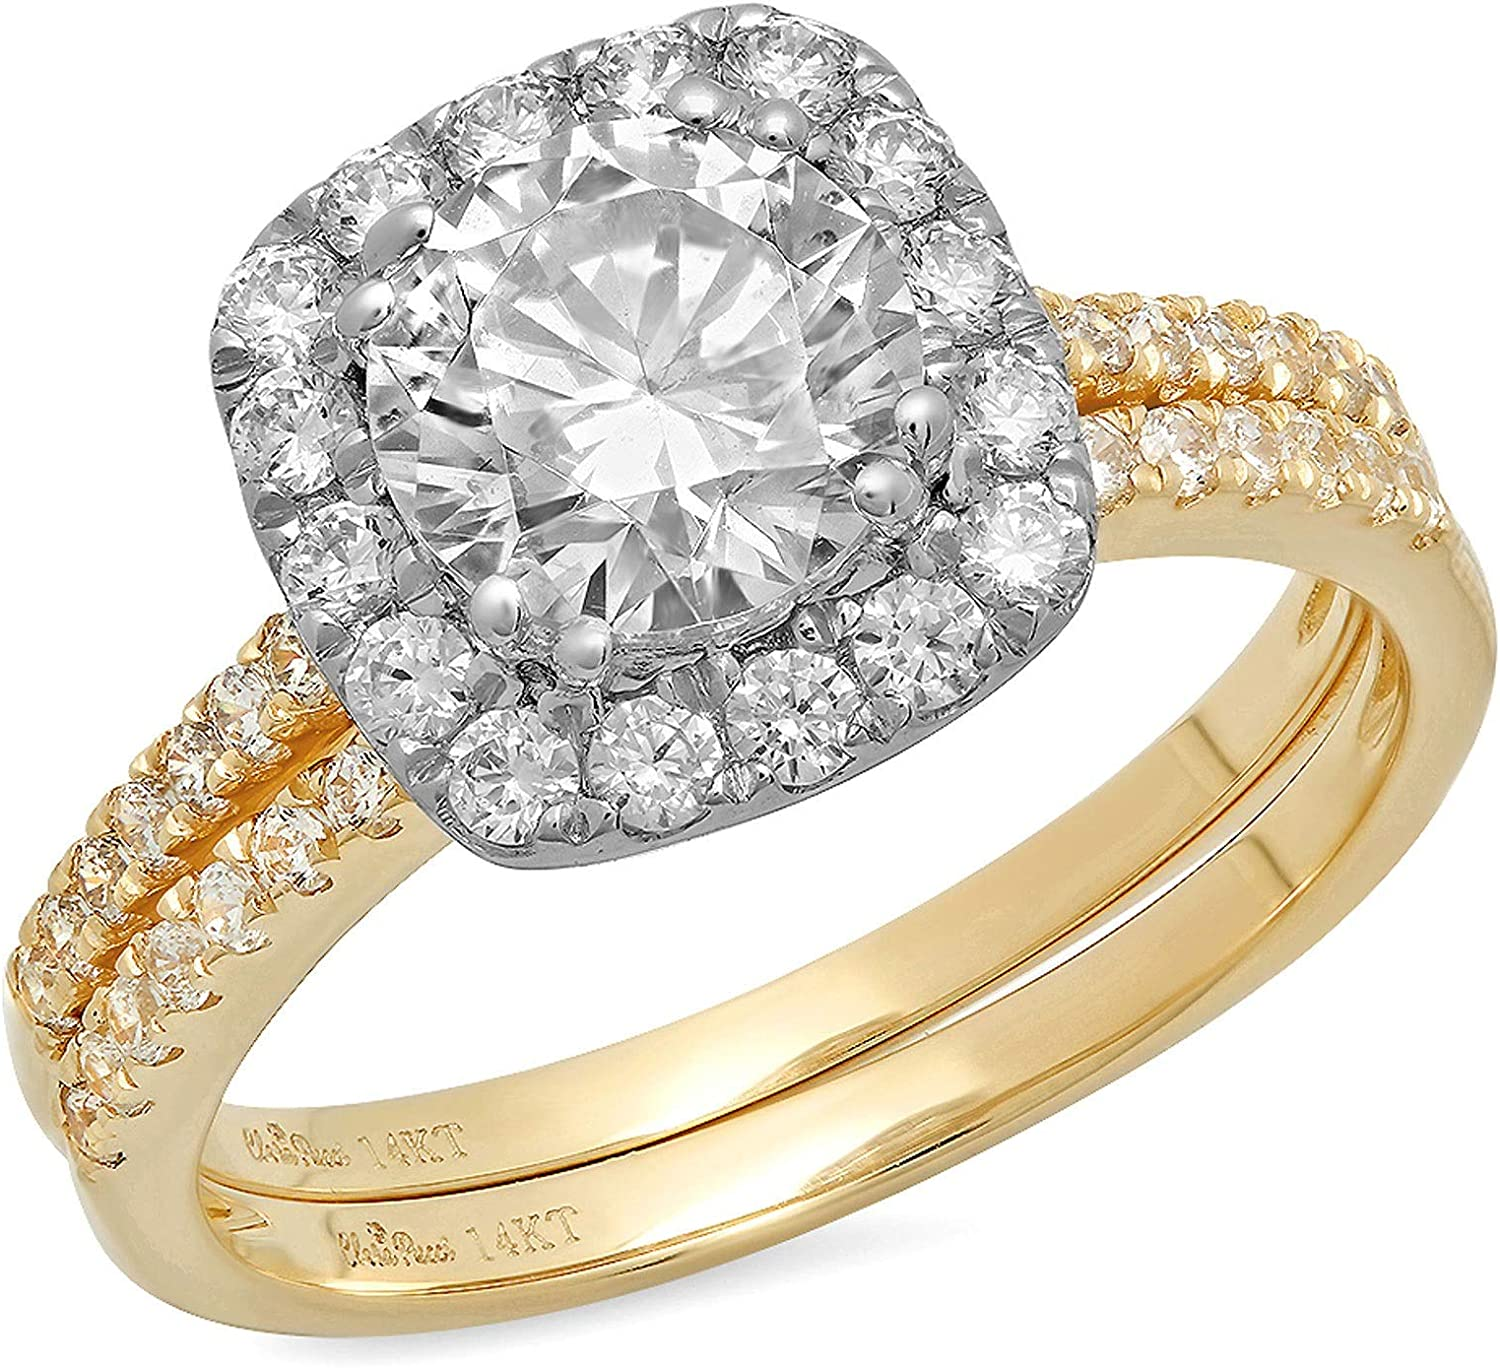 2.19ct Round Cut Halo Pave Solitaire Halo with Accent VVS1 Ideal D White Created Sapphire & Simulated Diamond Engagement Promise Designer Anniversary Wedding Bridal ring band set 14k Yellow White Gold